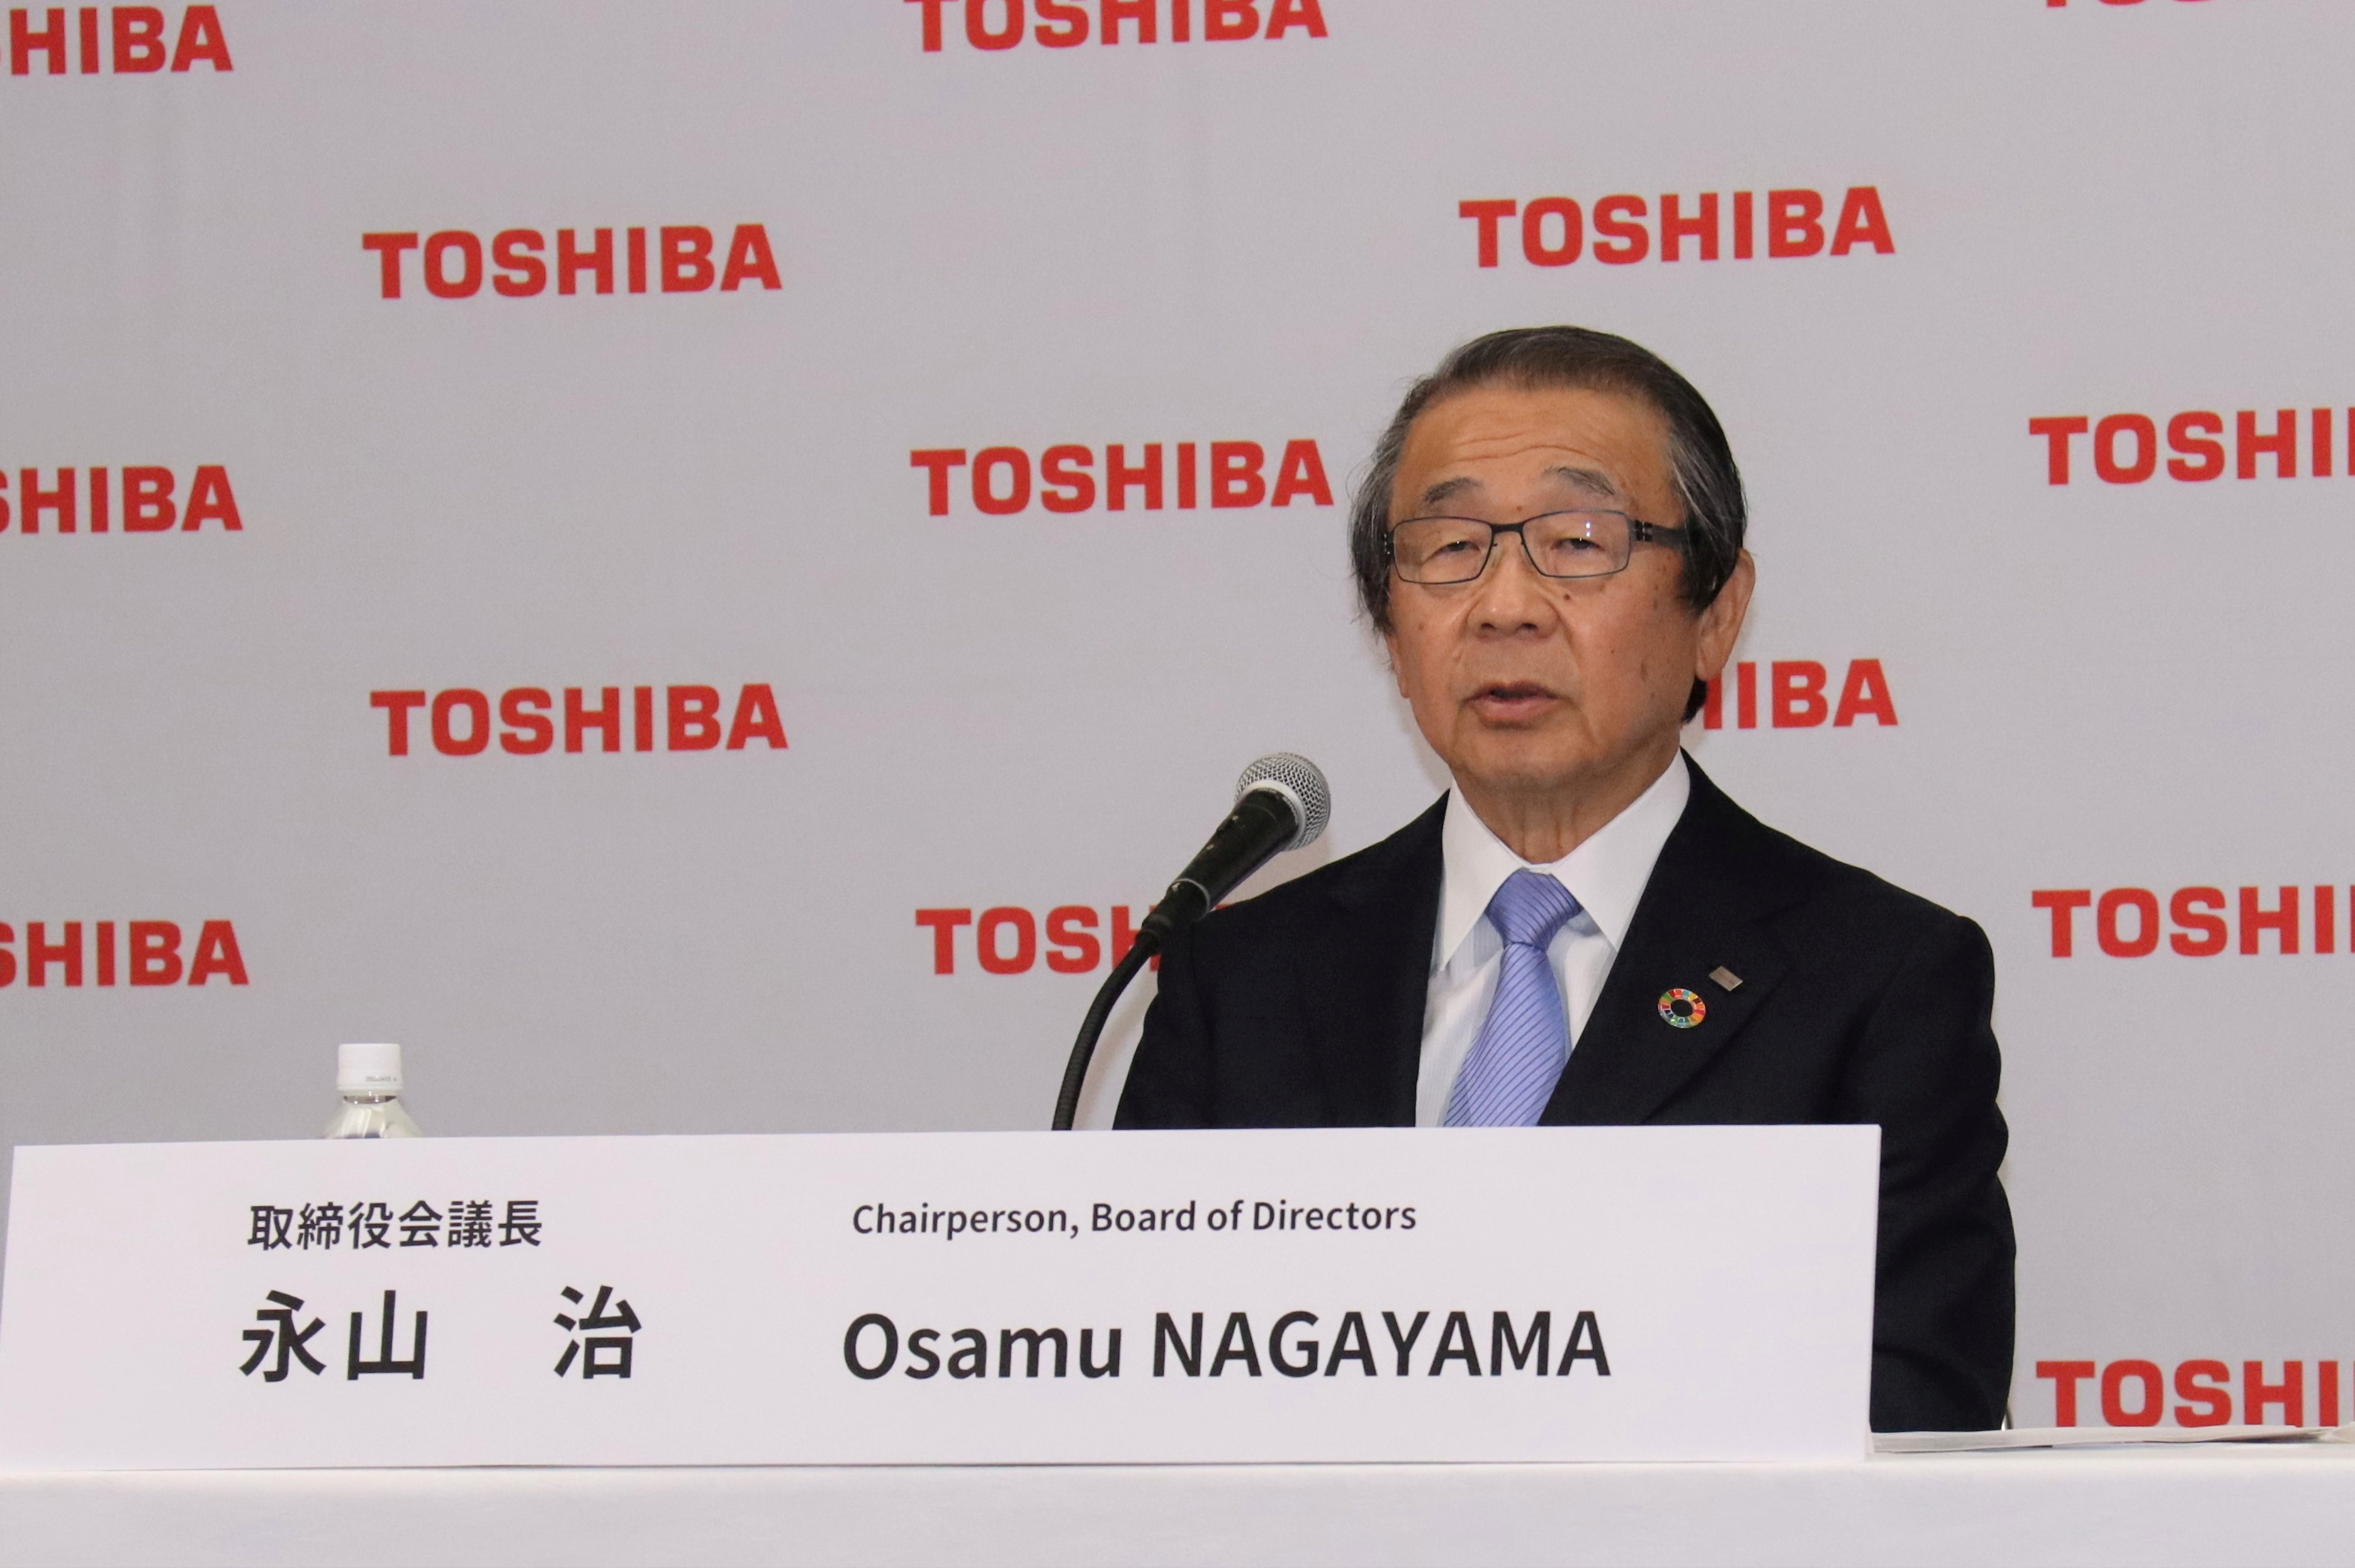 Toshiba Corp. Board of Directors Chairperson Osamu Nagayama attends a news conference in Tokyo Japan June 14, 2021, in this handout photo taken and released by Toshiba Corporation. Toshiba Corporation/Handout via REUTERS/File Photo